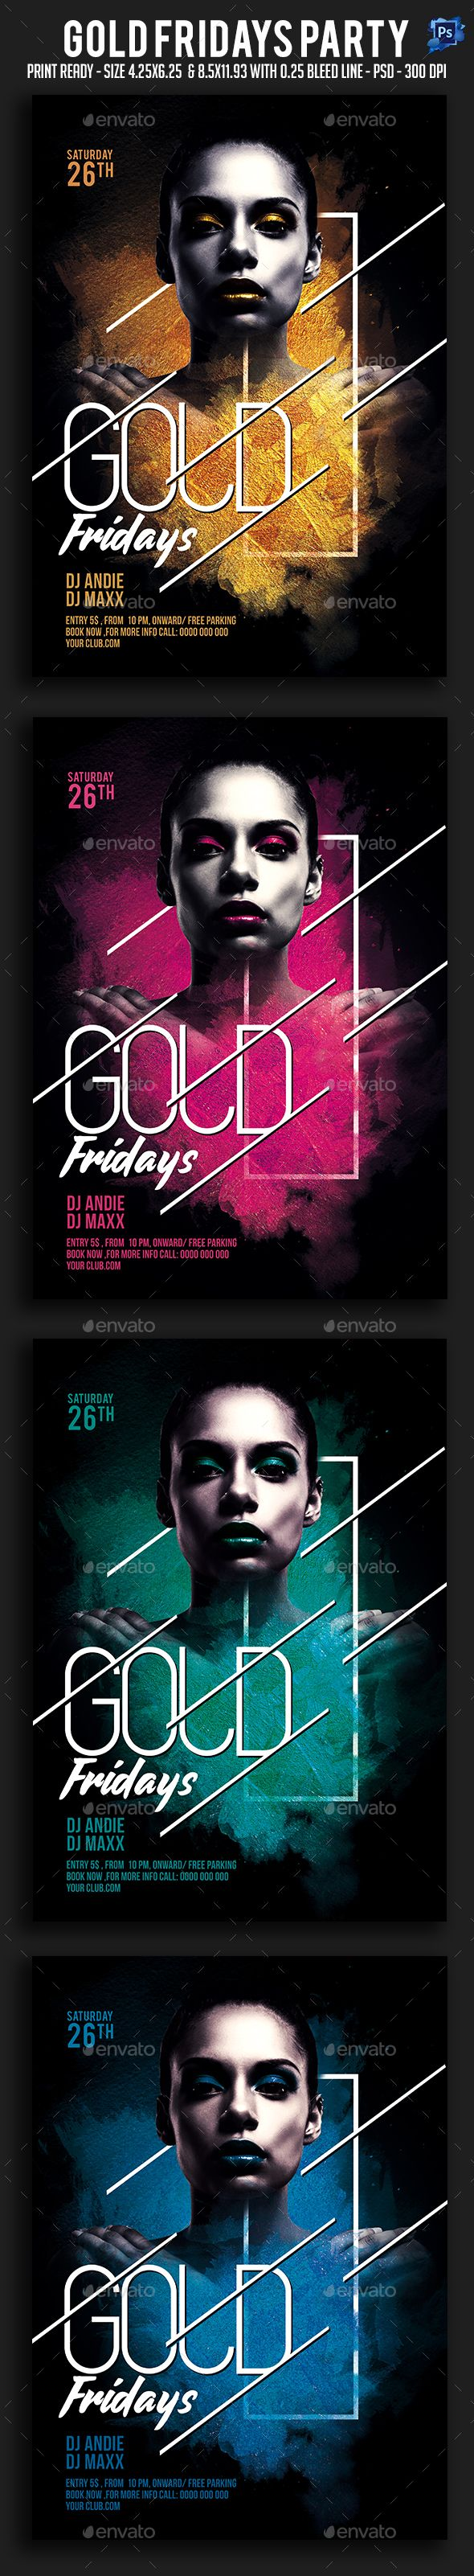 pin by fdesign nerd on futuristic flyer template pinterest party